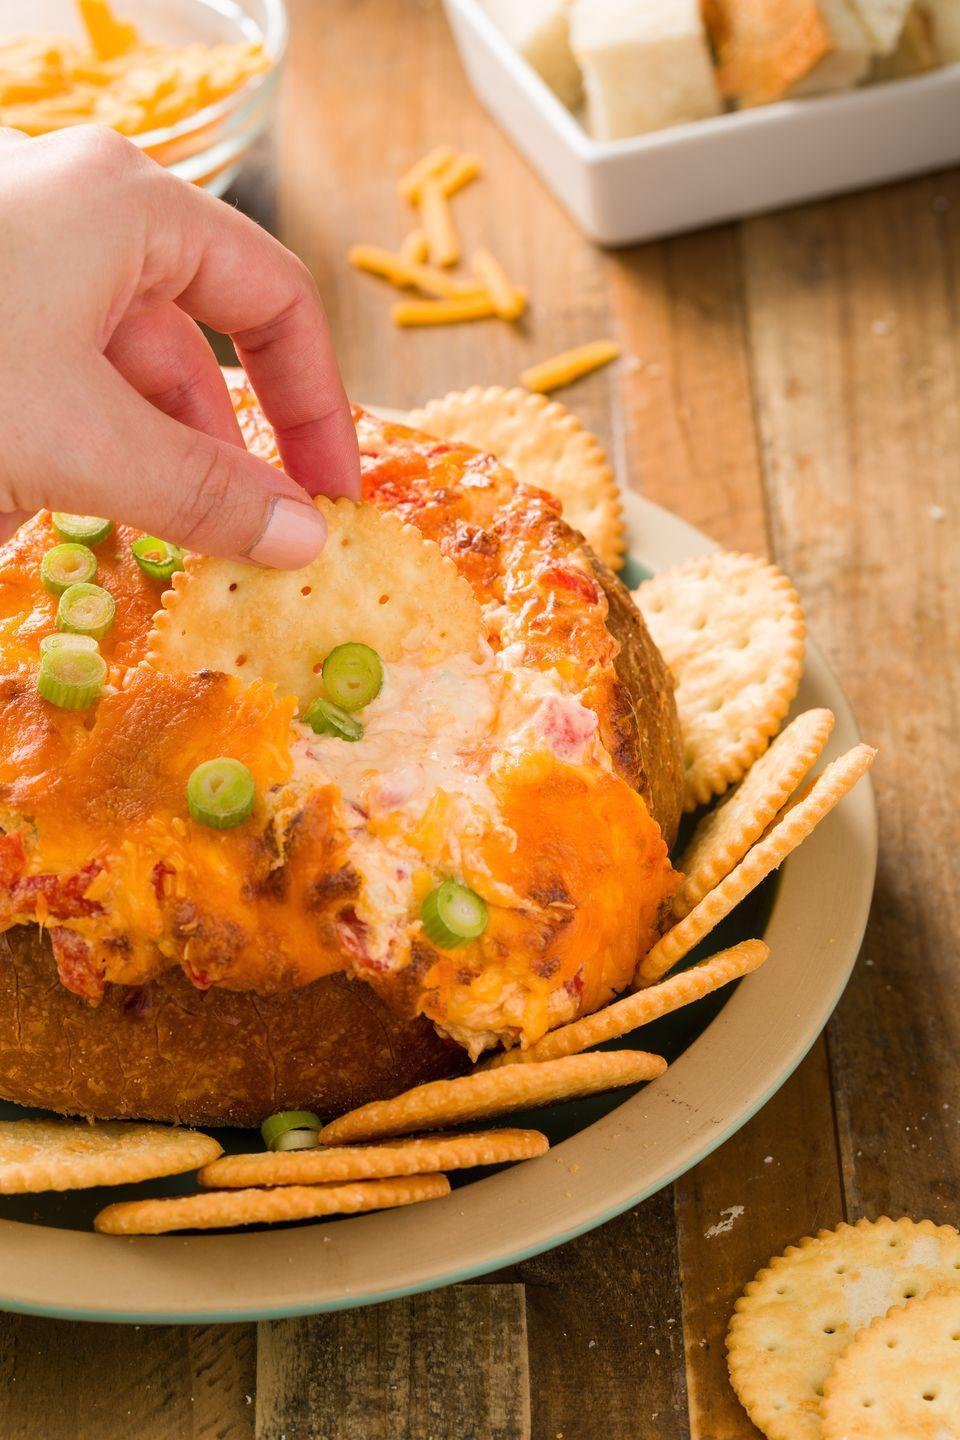 """<p>Put this on the table and watch it disappear.</p><p>Get the recipe from <a href=""""https://www.delish.com/cooking/recipe-ideas/recipes/a44541/baked-pimiento-cheese-dip-in-a-bread-bowl-recipe/?visibilityoverride"""" rel=""""nofollow noopener"""" target=""""_blank"""" data-ylk=""""slk:Delish"""" class=""""link rapid-noclick-resp"""">Delish</a>.</p>"""